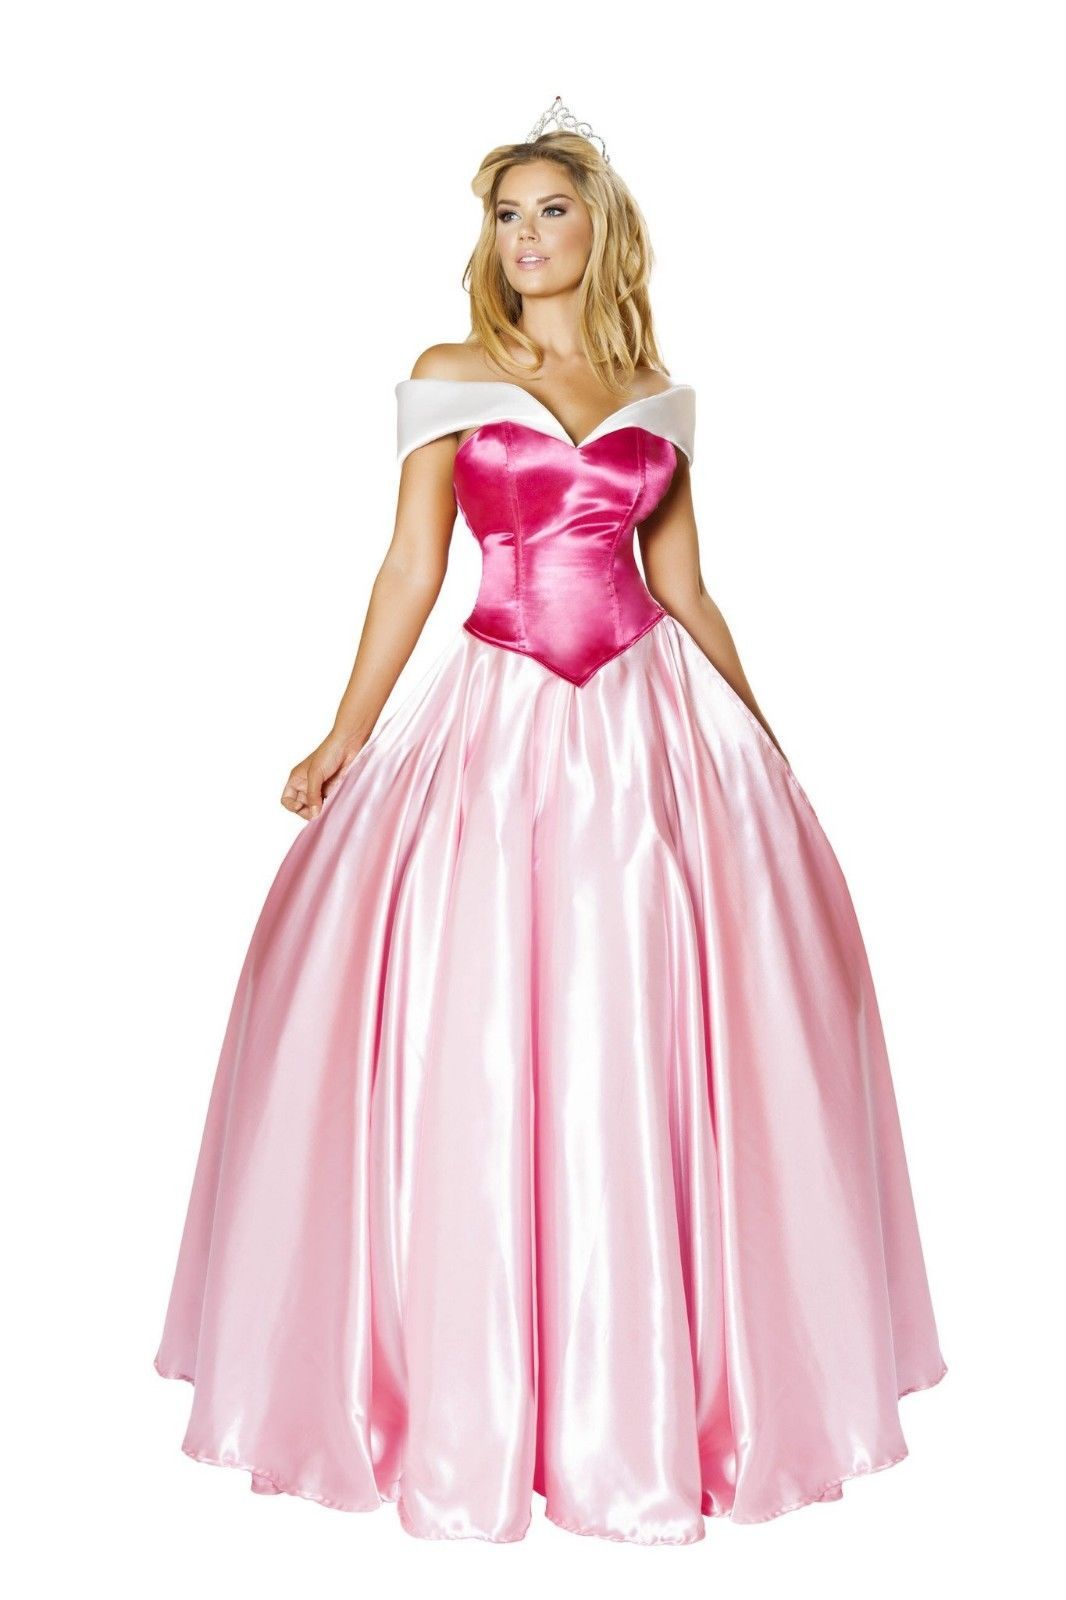 Roma Beautiful Princess Pink Gown Deluxe Fairytale Costume 4733